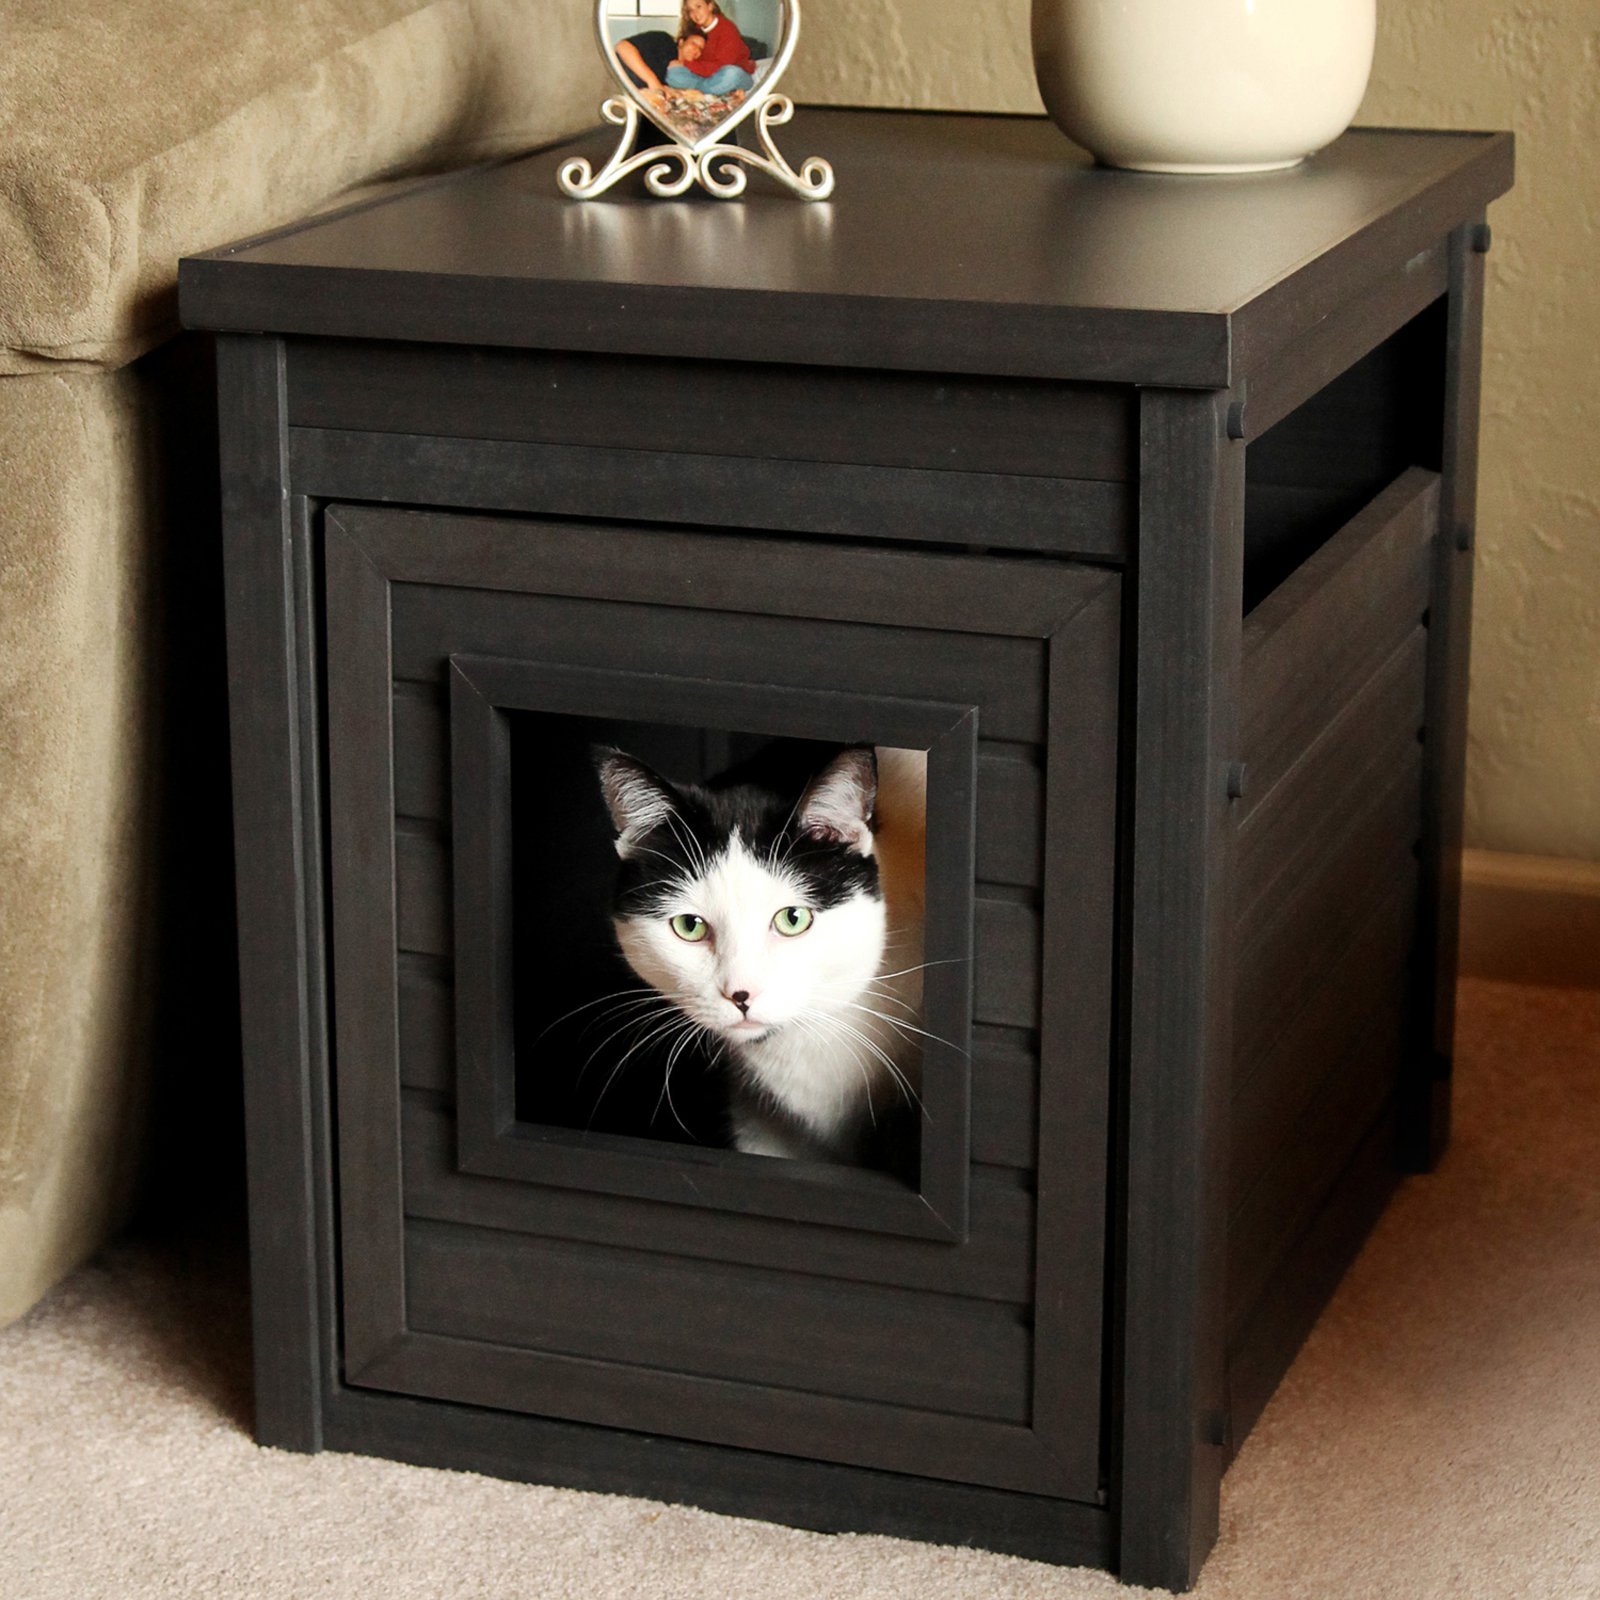 Cat Litter Box Ideas Decorated Inside Modern Cabinets With Small Entry And  Pretty Frame And Vase